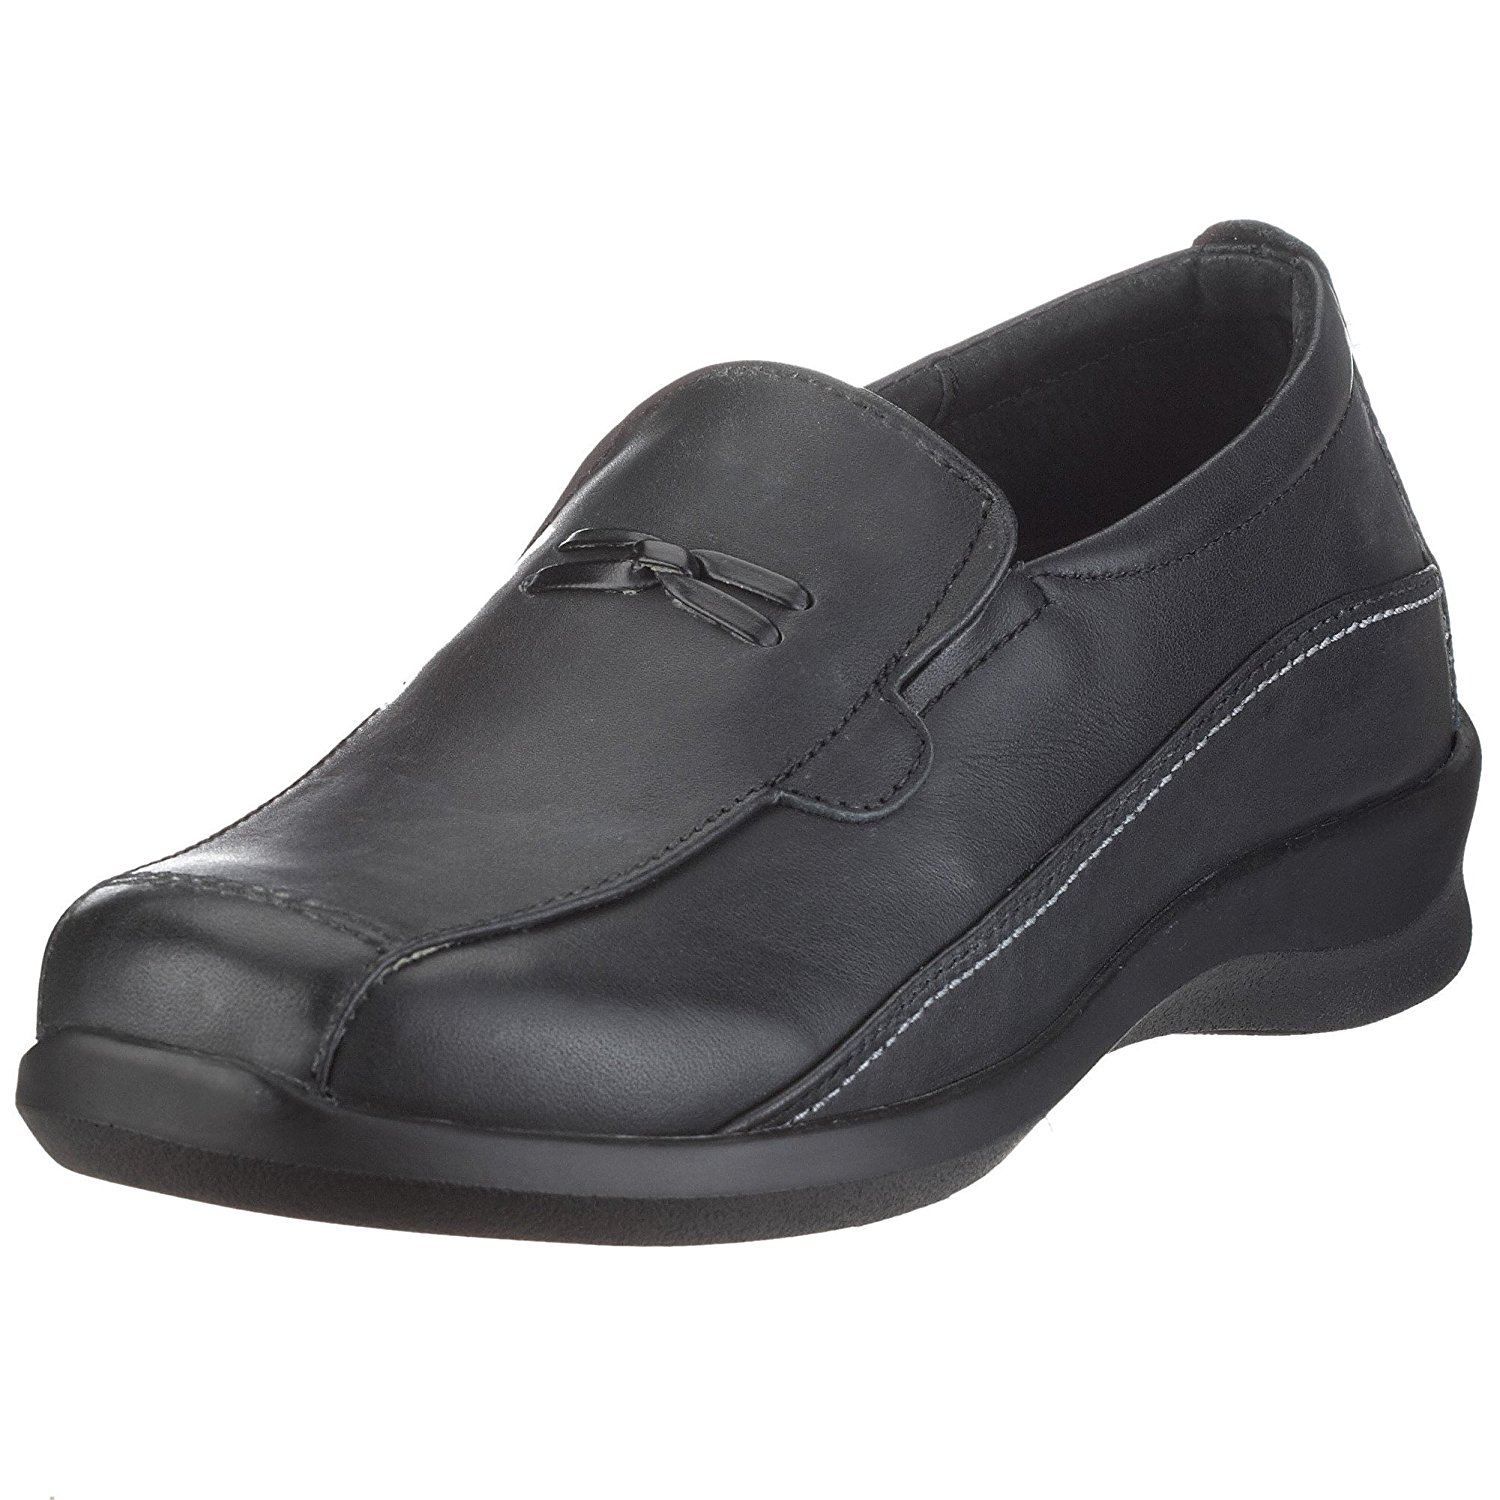 Aetrex E220 Rosalynn Women's Black Slip-on Loafer by Aetrex